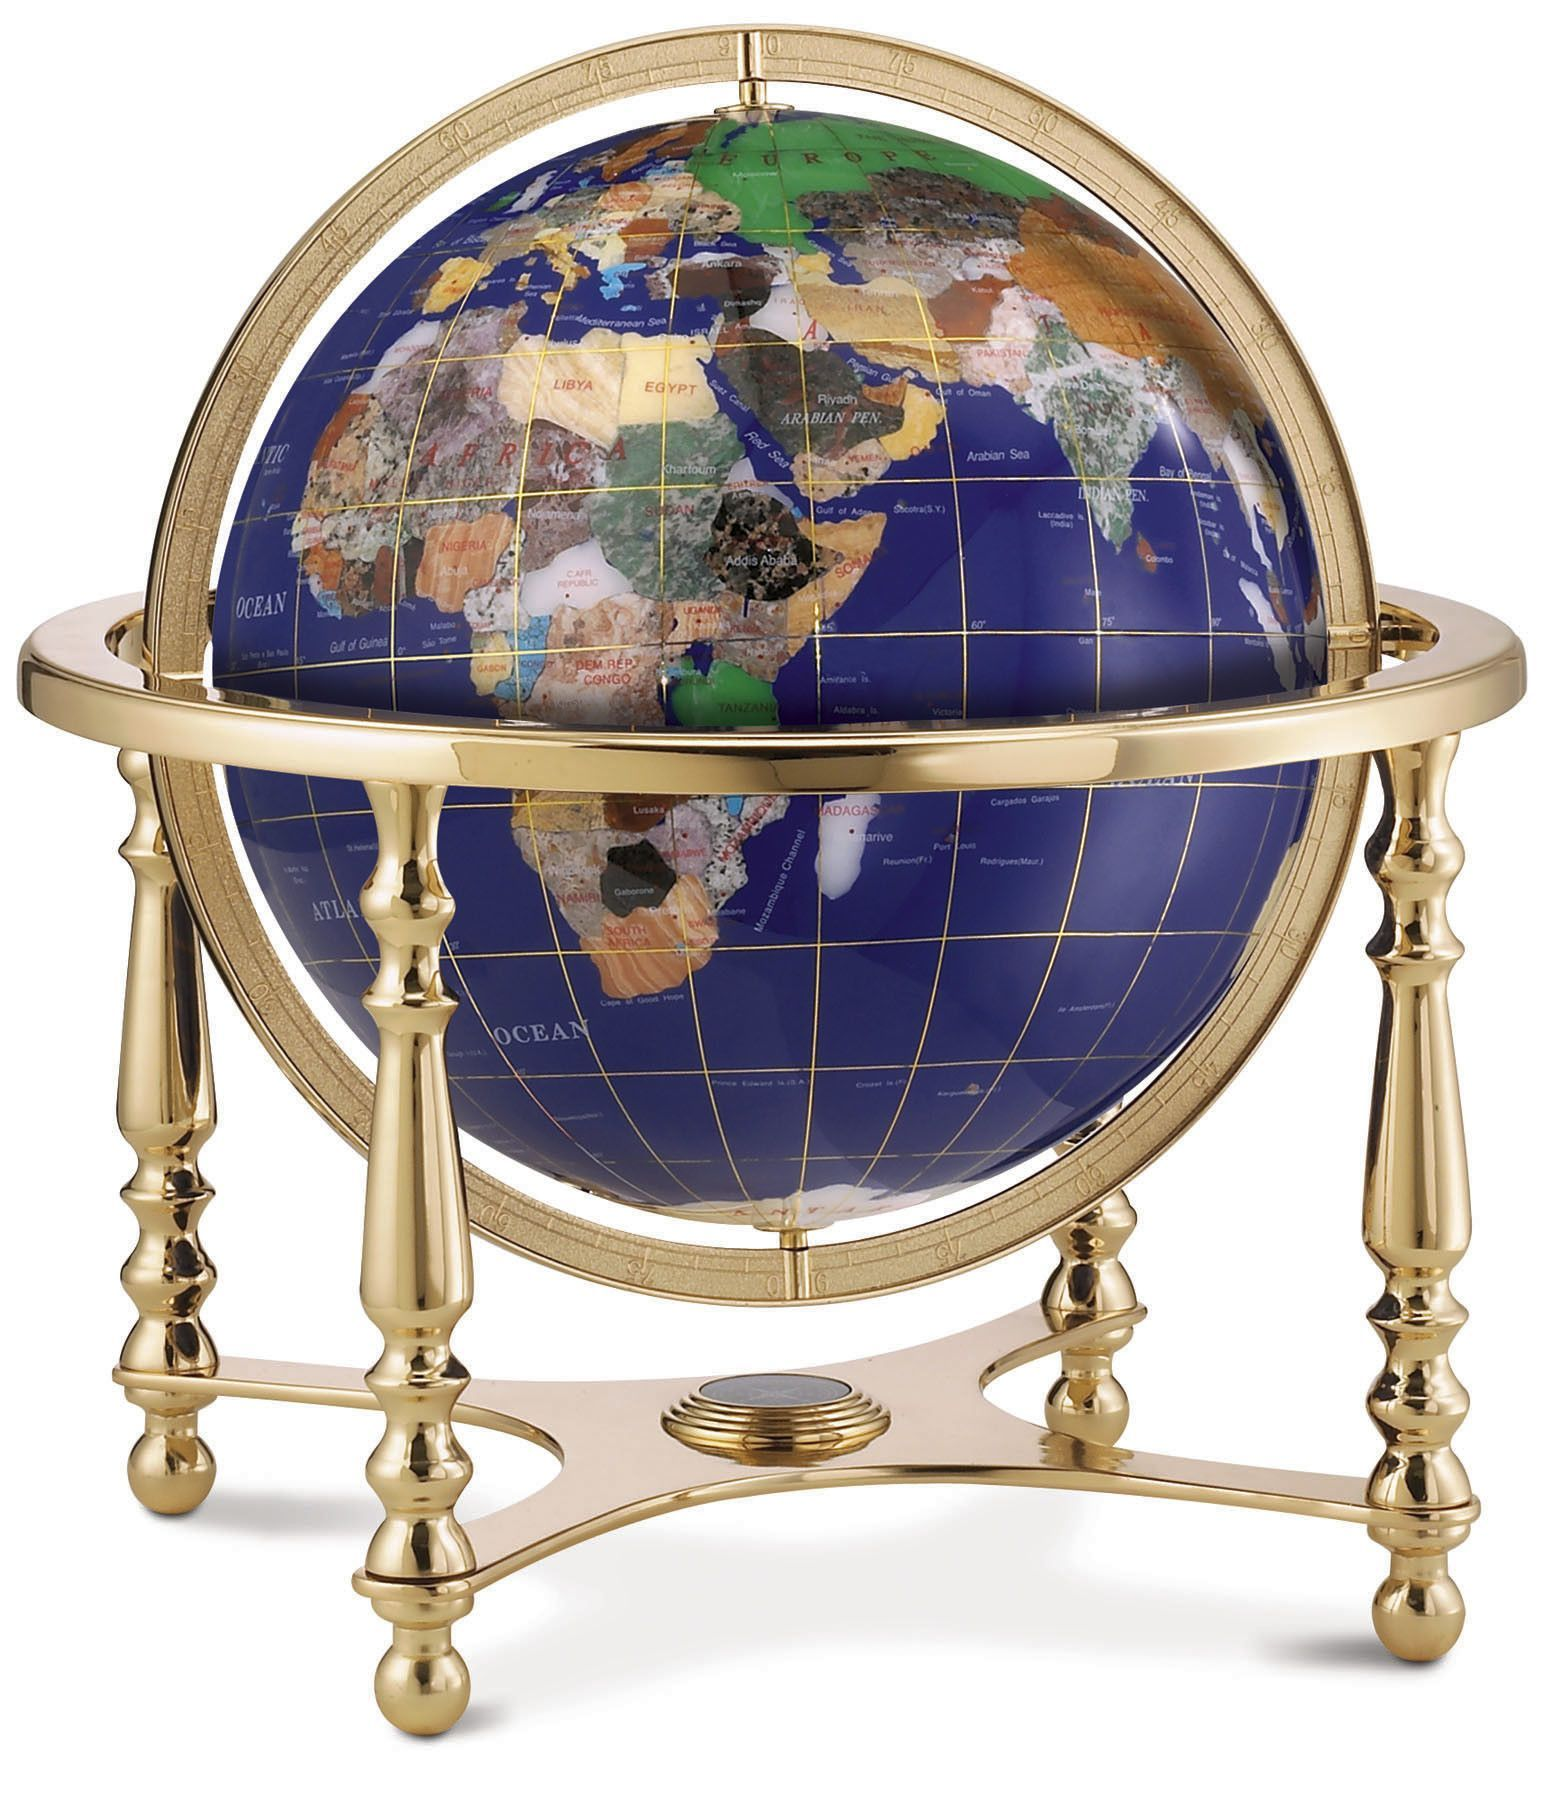 Features desk or tabletop gemstone globe beautifully inlaid features desk or tabletop gemstone globe beautifully inlaid with over 25 different semi precious hand carved gemstones displays lines of longitude and gumiabroncs Choice Image